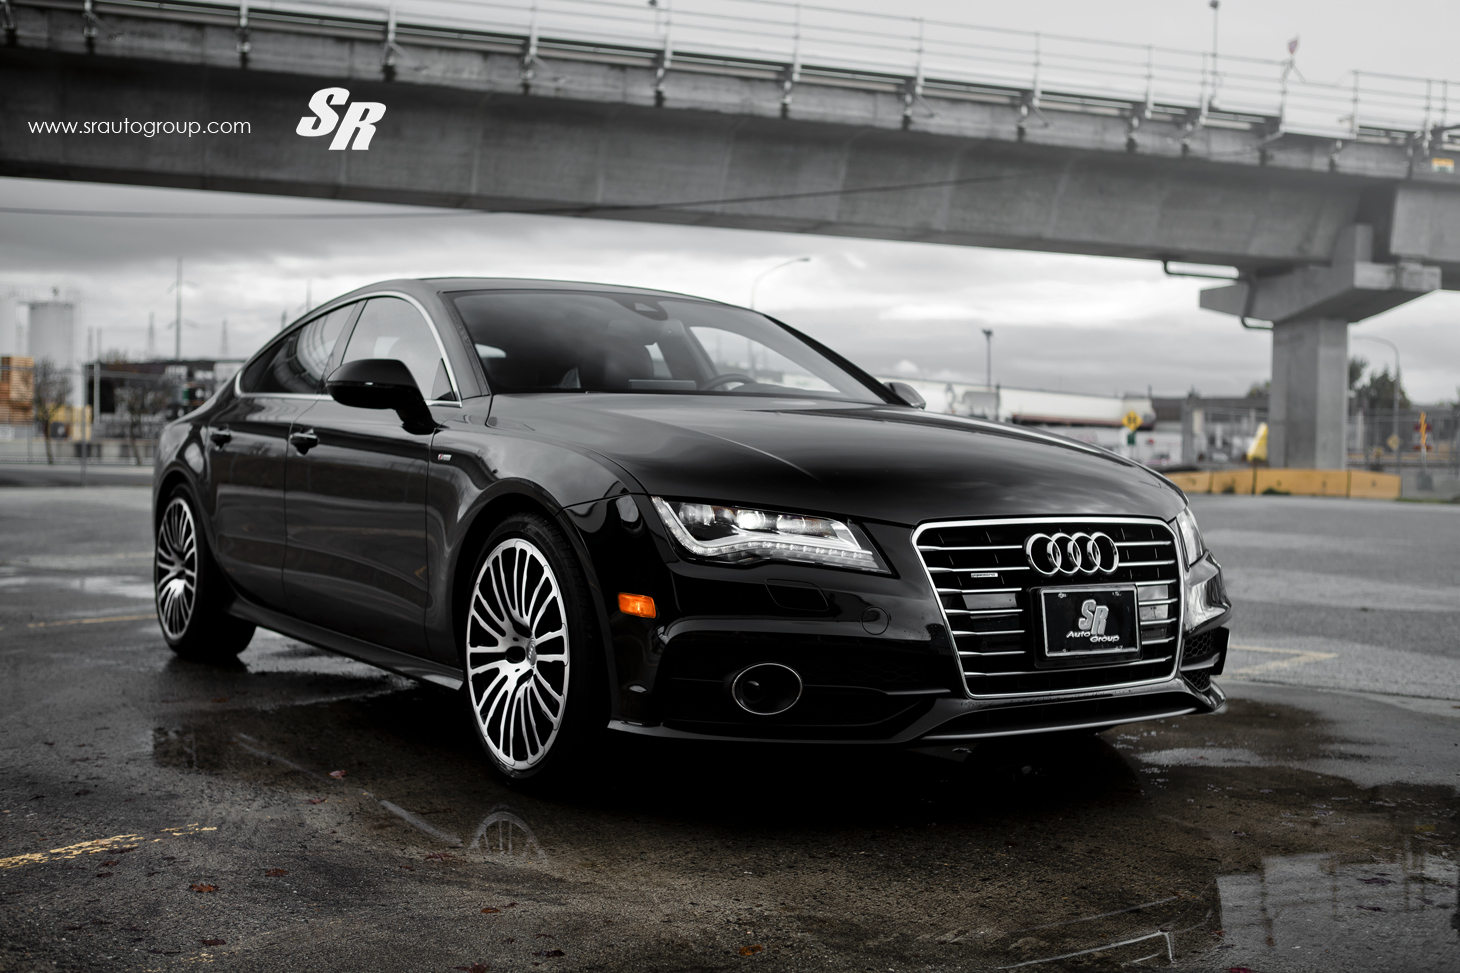 Audi A7 2014 Black Matured and Poised: SR...